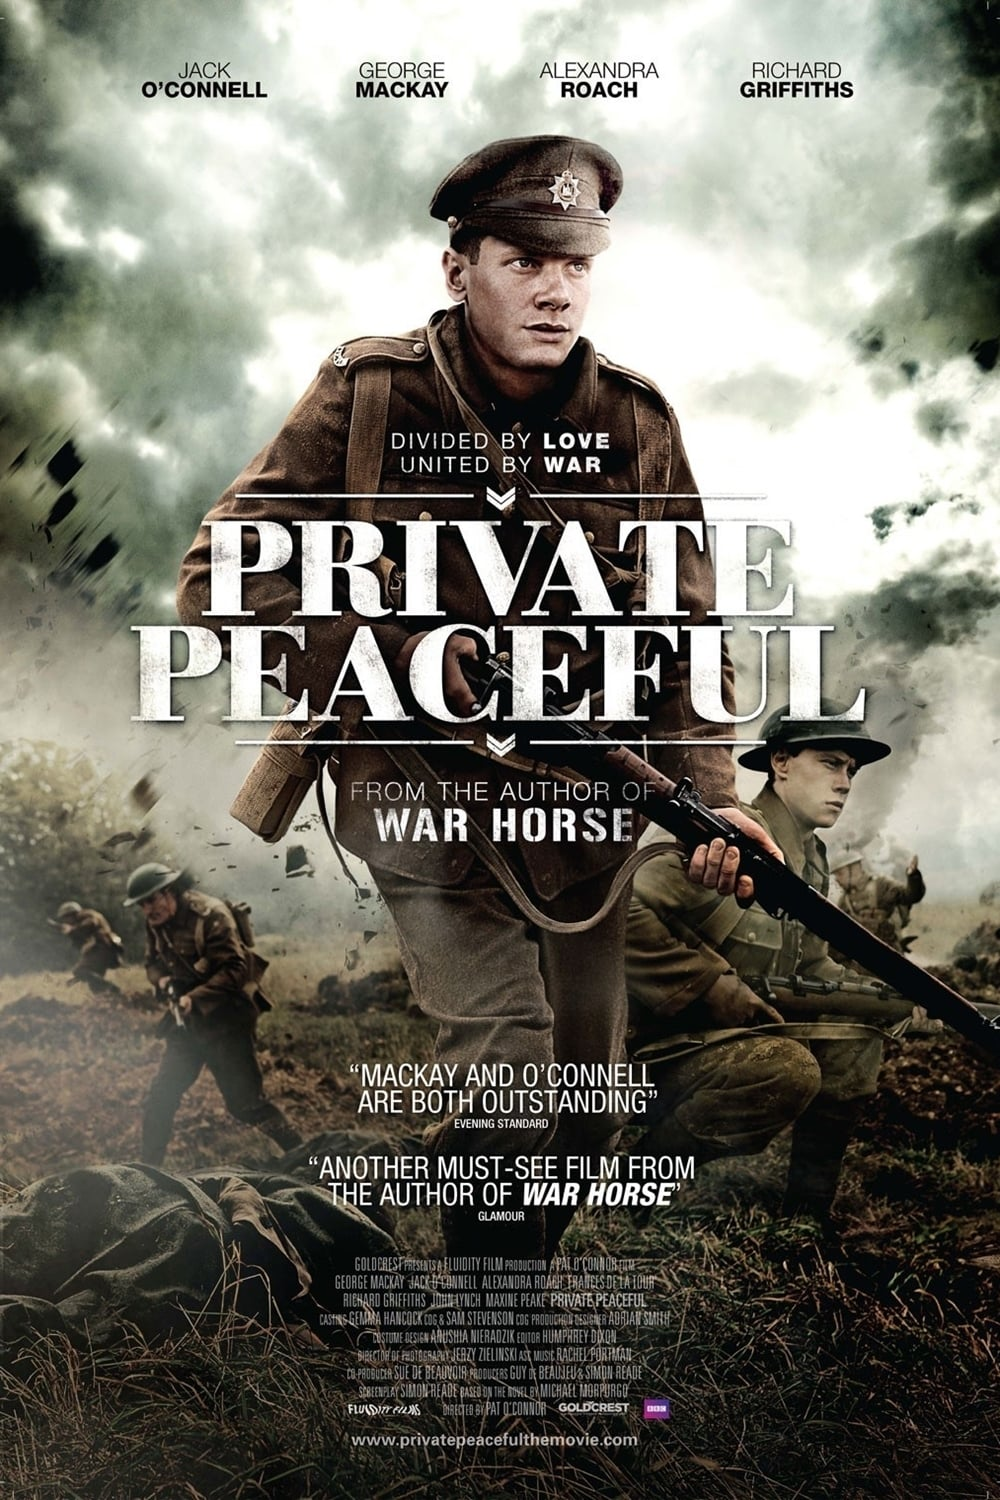 private peaceful bravery cowardice 14 quotes from private peaceful: 'being his real brother i could feel i live in his shadows, but i never have and i do not now i live in his glow'.